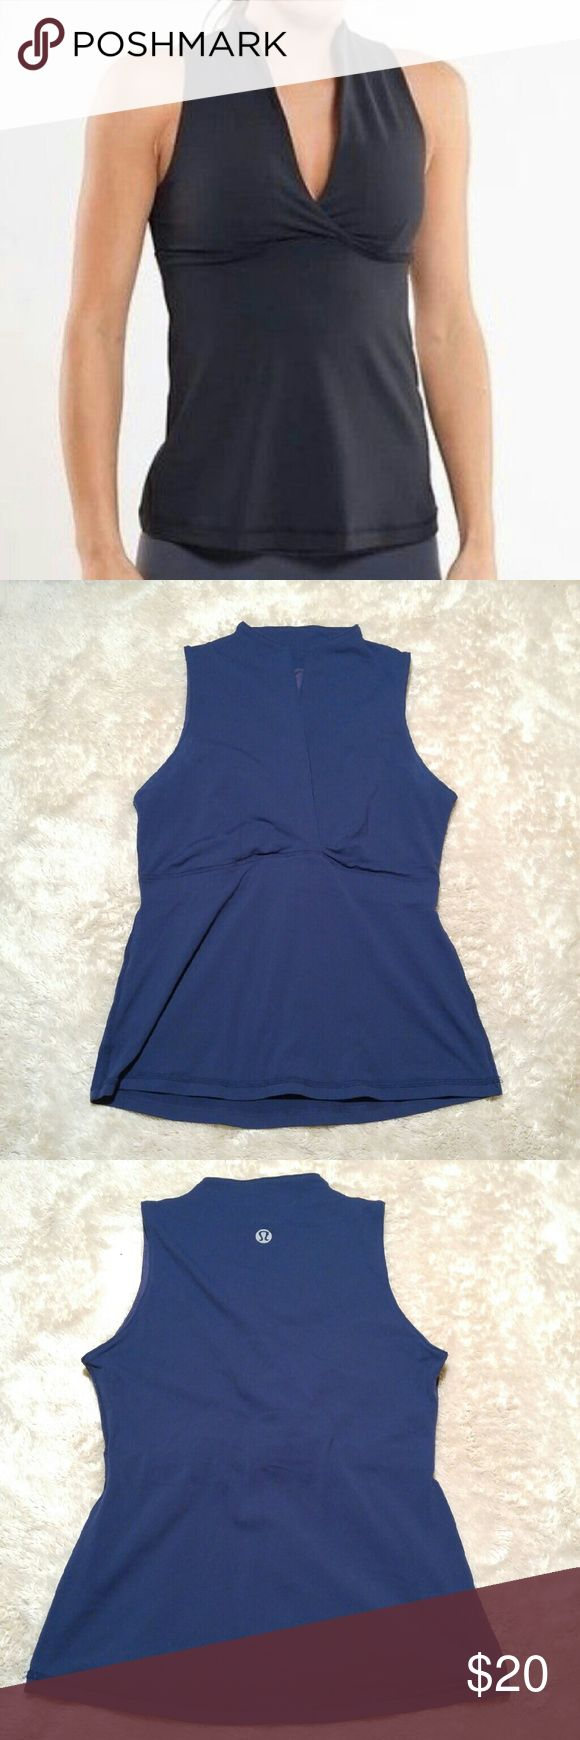 "Lululemon Athletica Navy Whisper Tank Top Lululemon Athletic navy whisper tank. Pre loved but still in great condition! Only flaw is the label coming off from washing. Color is navy like the stock photo, it photographed brighter than it is.  Approximate measurements Armpit to armpit 17"" Shoulder to hem 23"" lululemon athletica Tops Tank Tops"